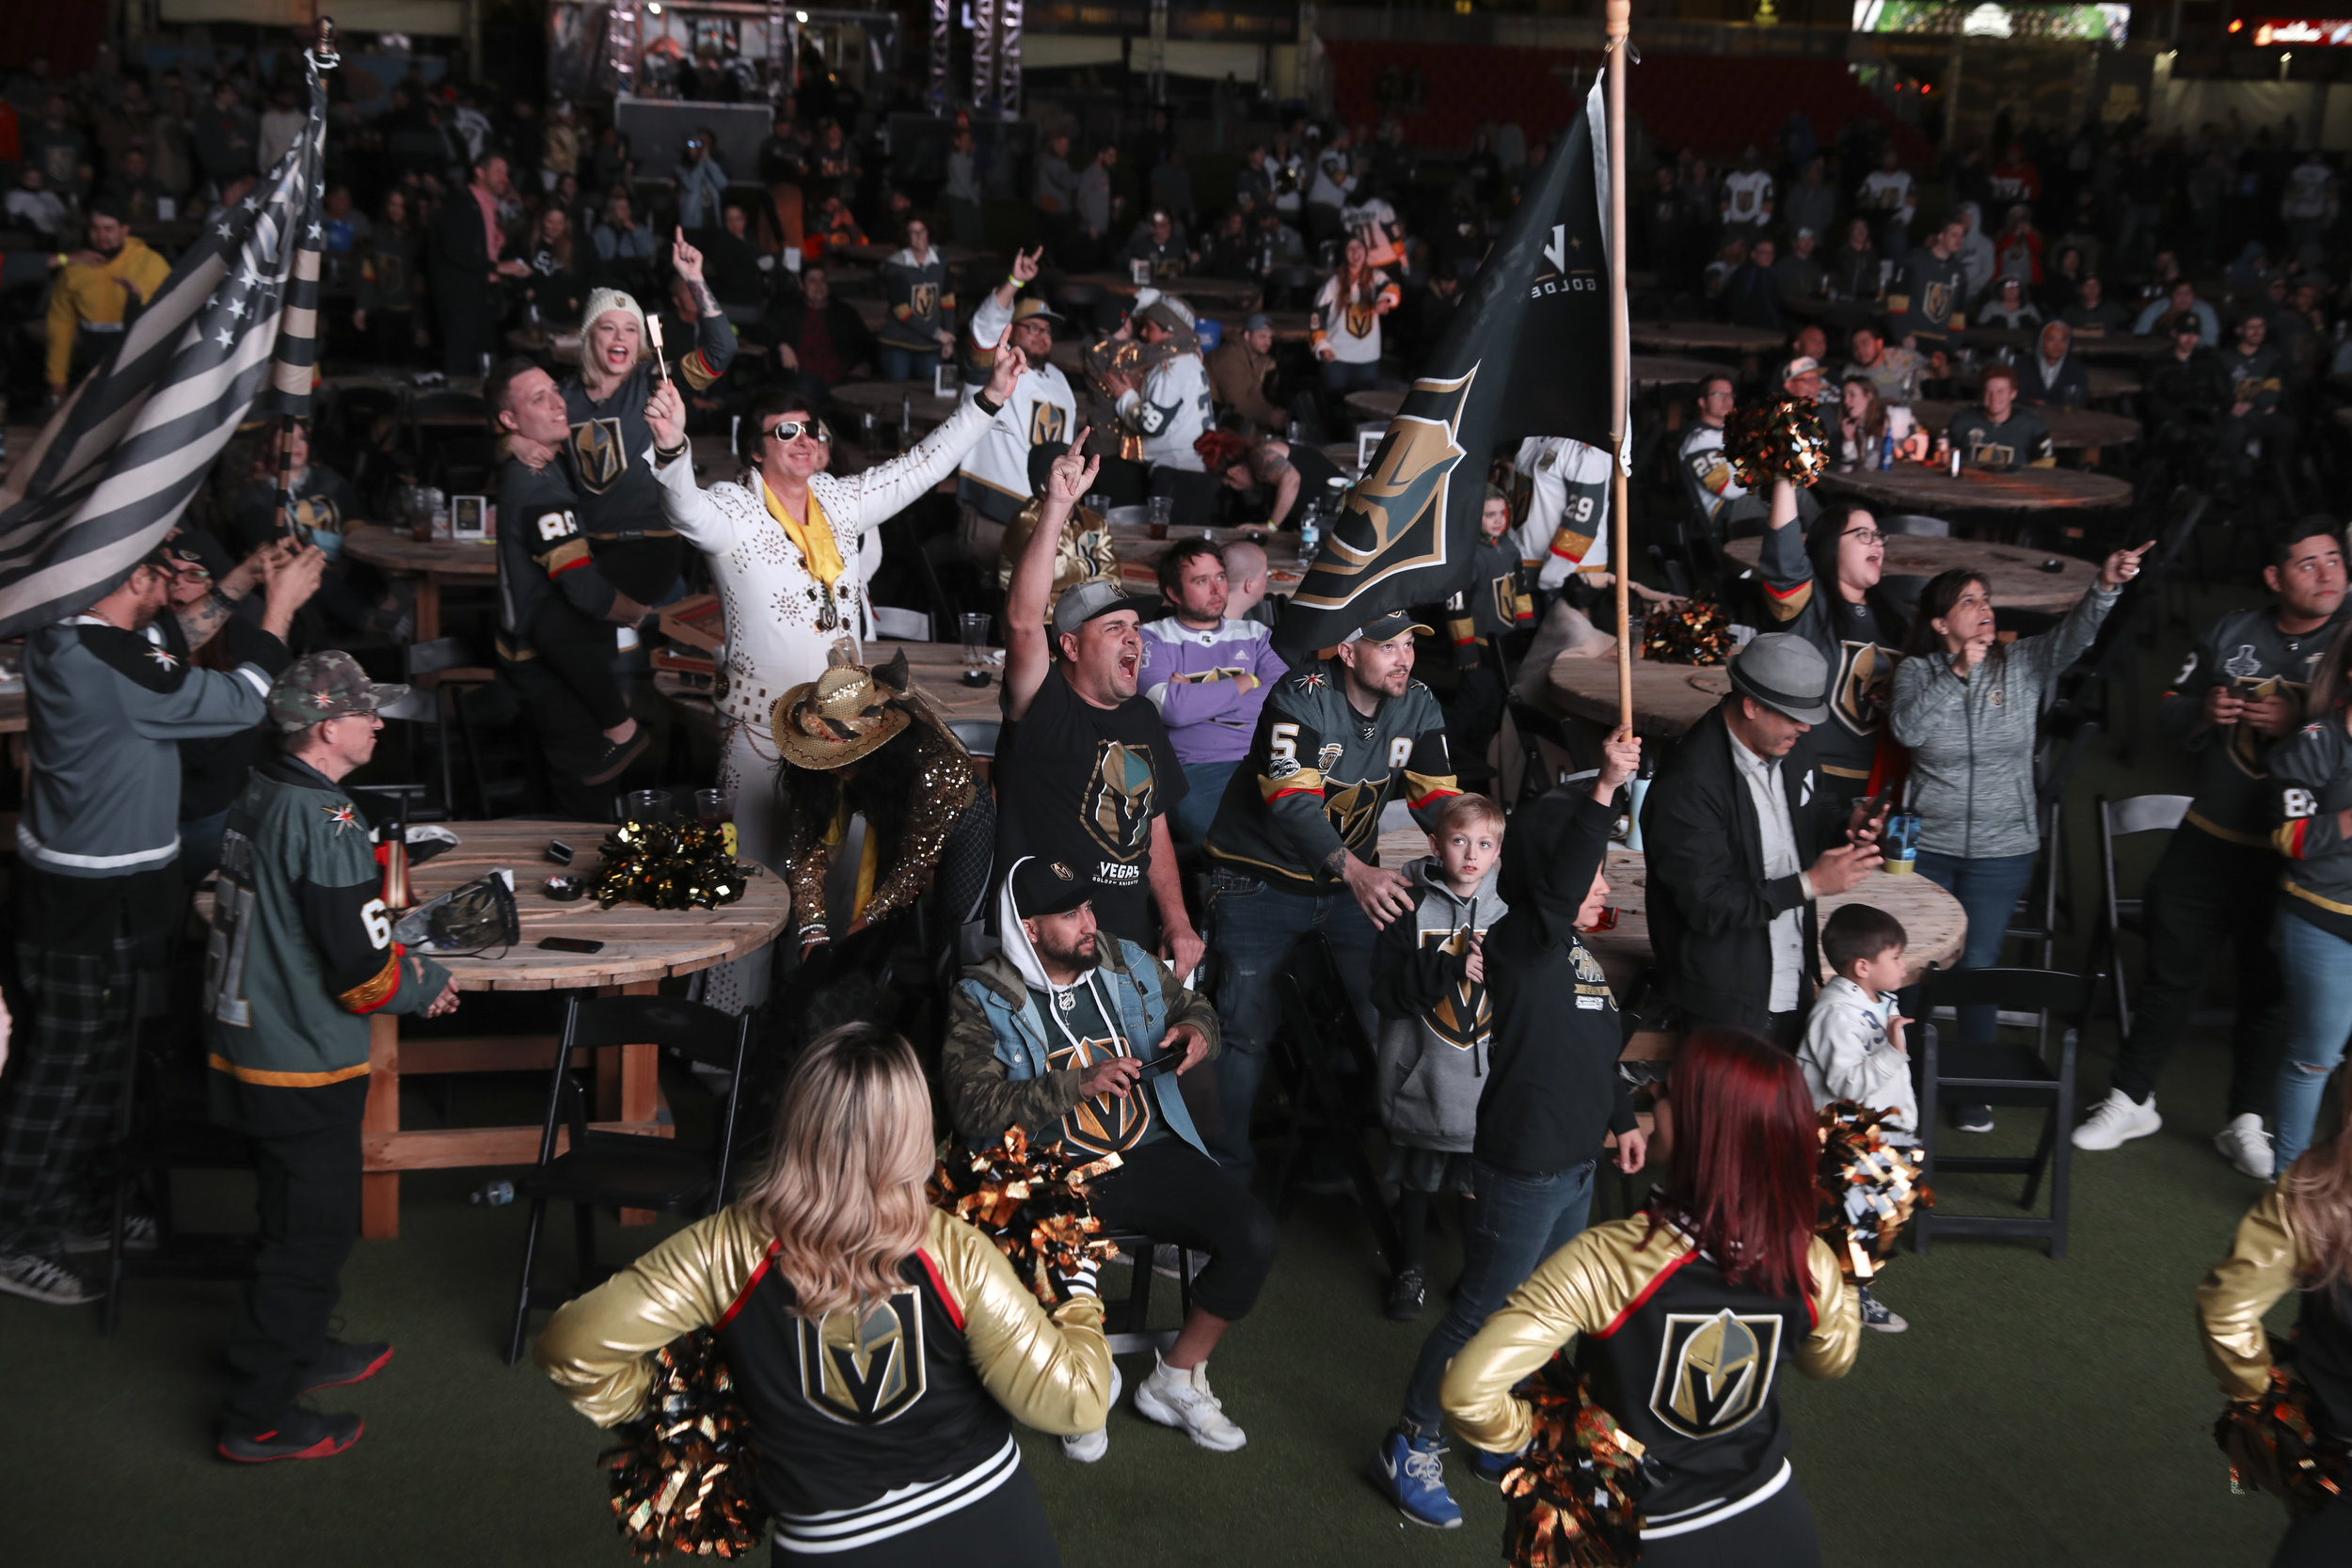 SCP-Watch-Party-DTLV_zk_2019-04-10_59.JPG